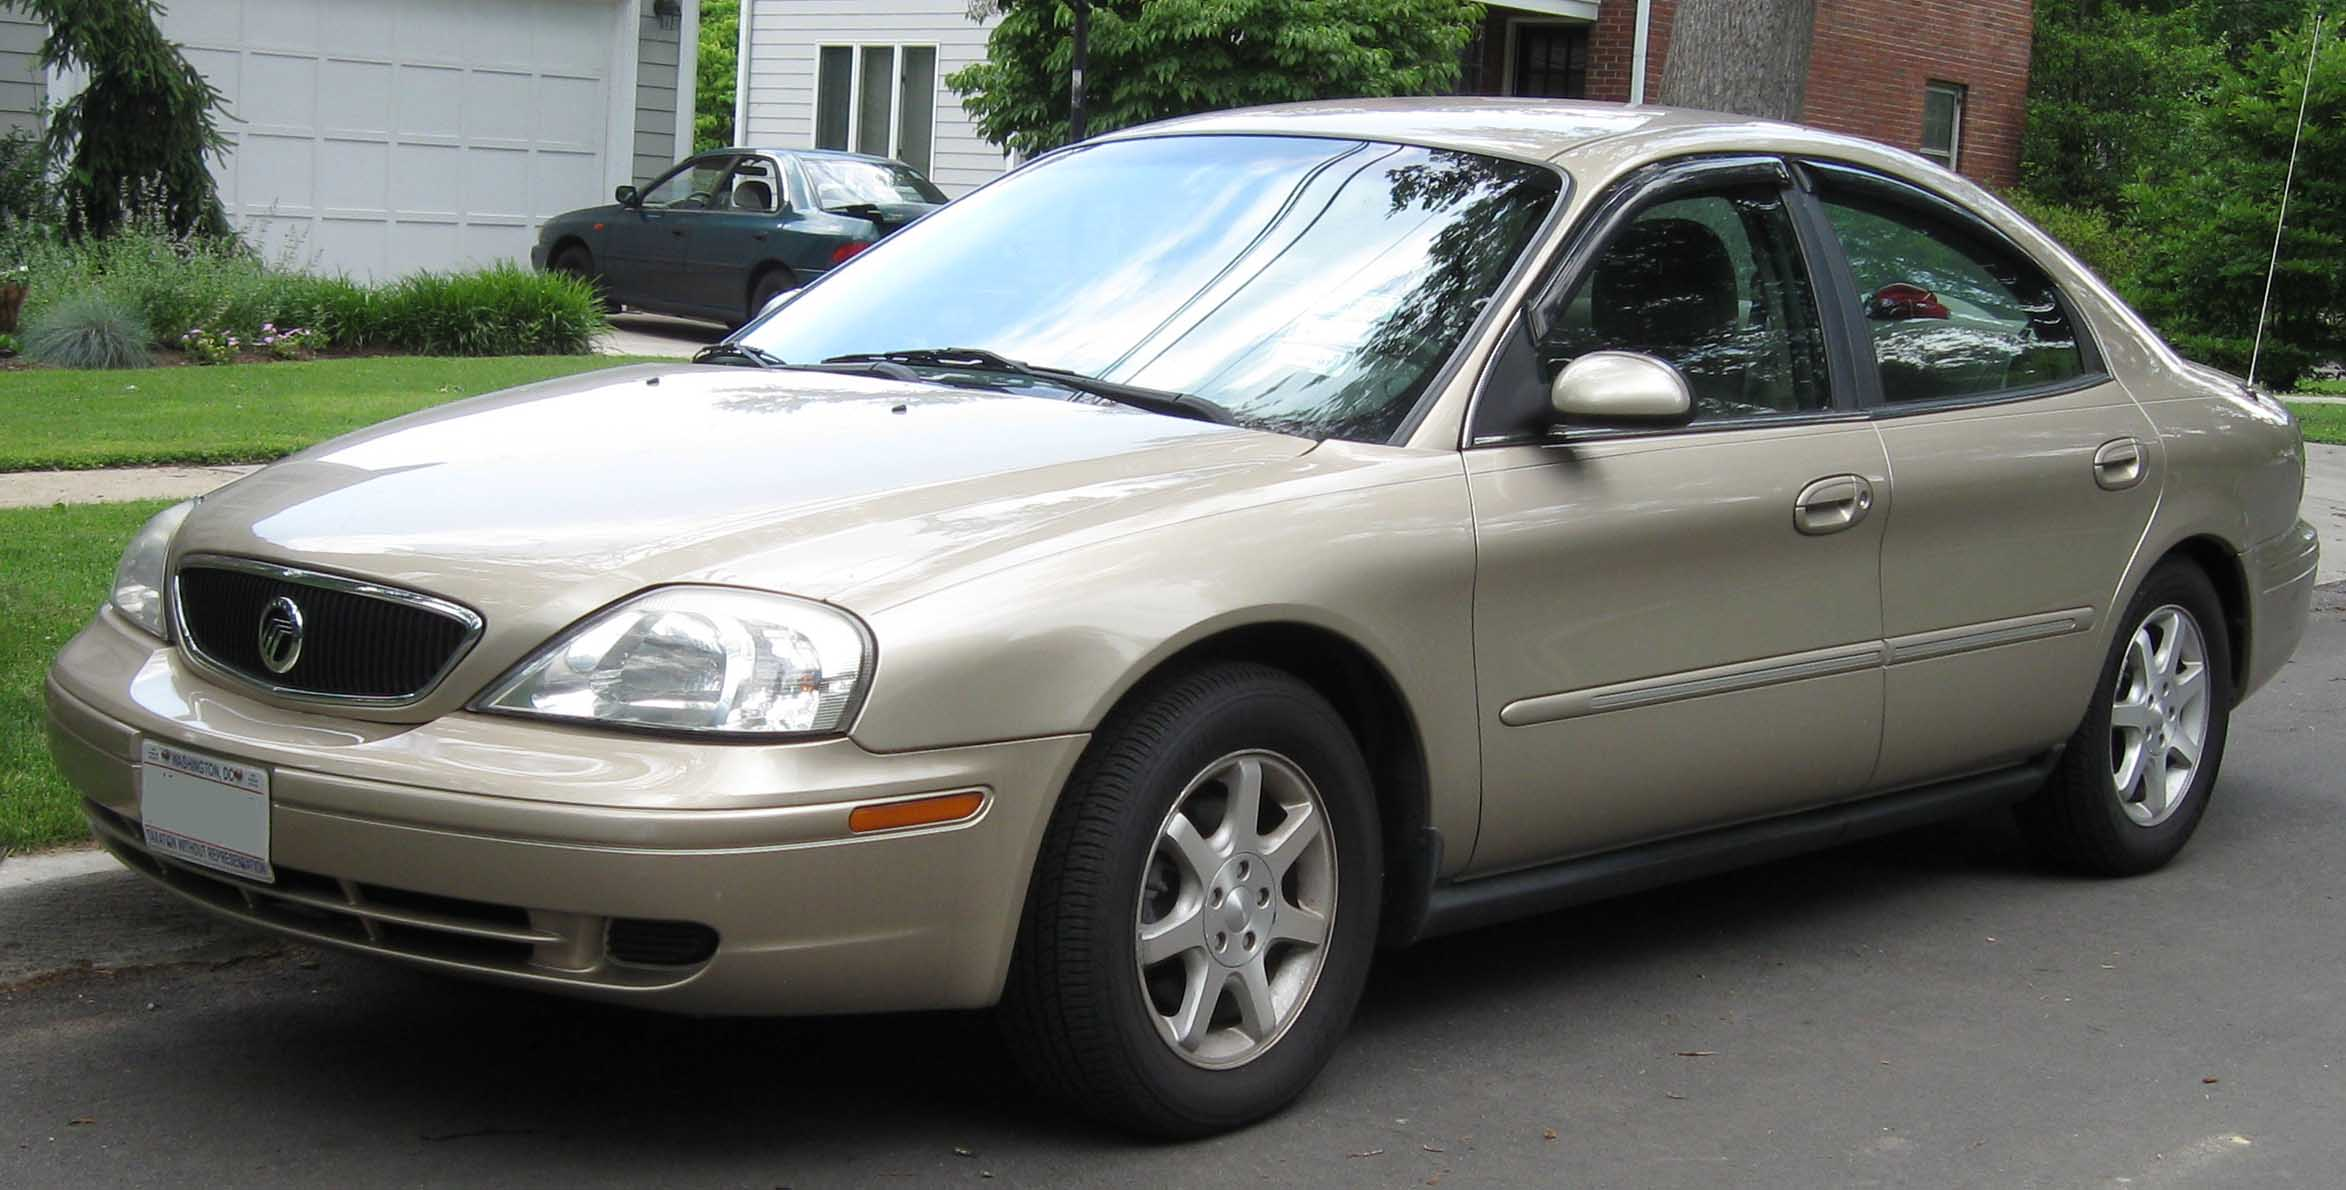 File00 03 Mercury Sable Gs Sedan Wikimedia Commons 2001 Dodge Ram Voltage Regulator